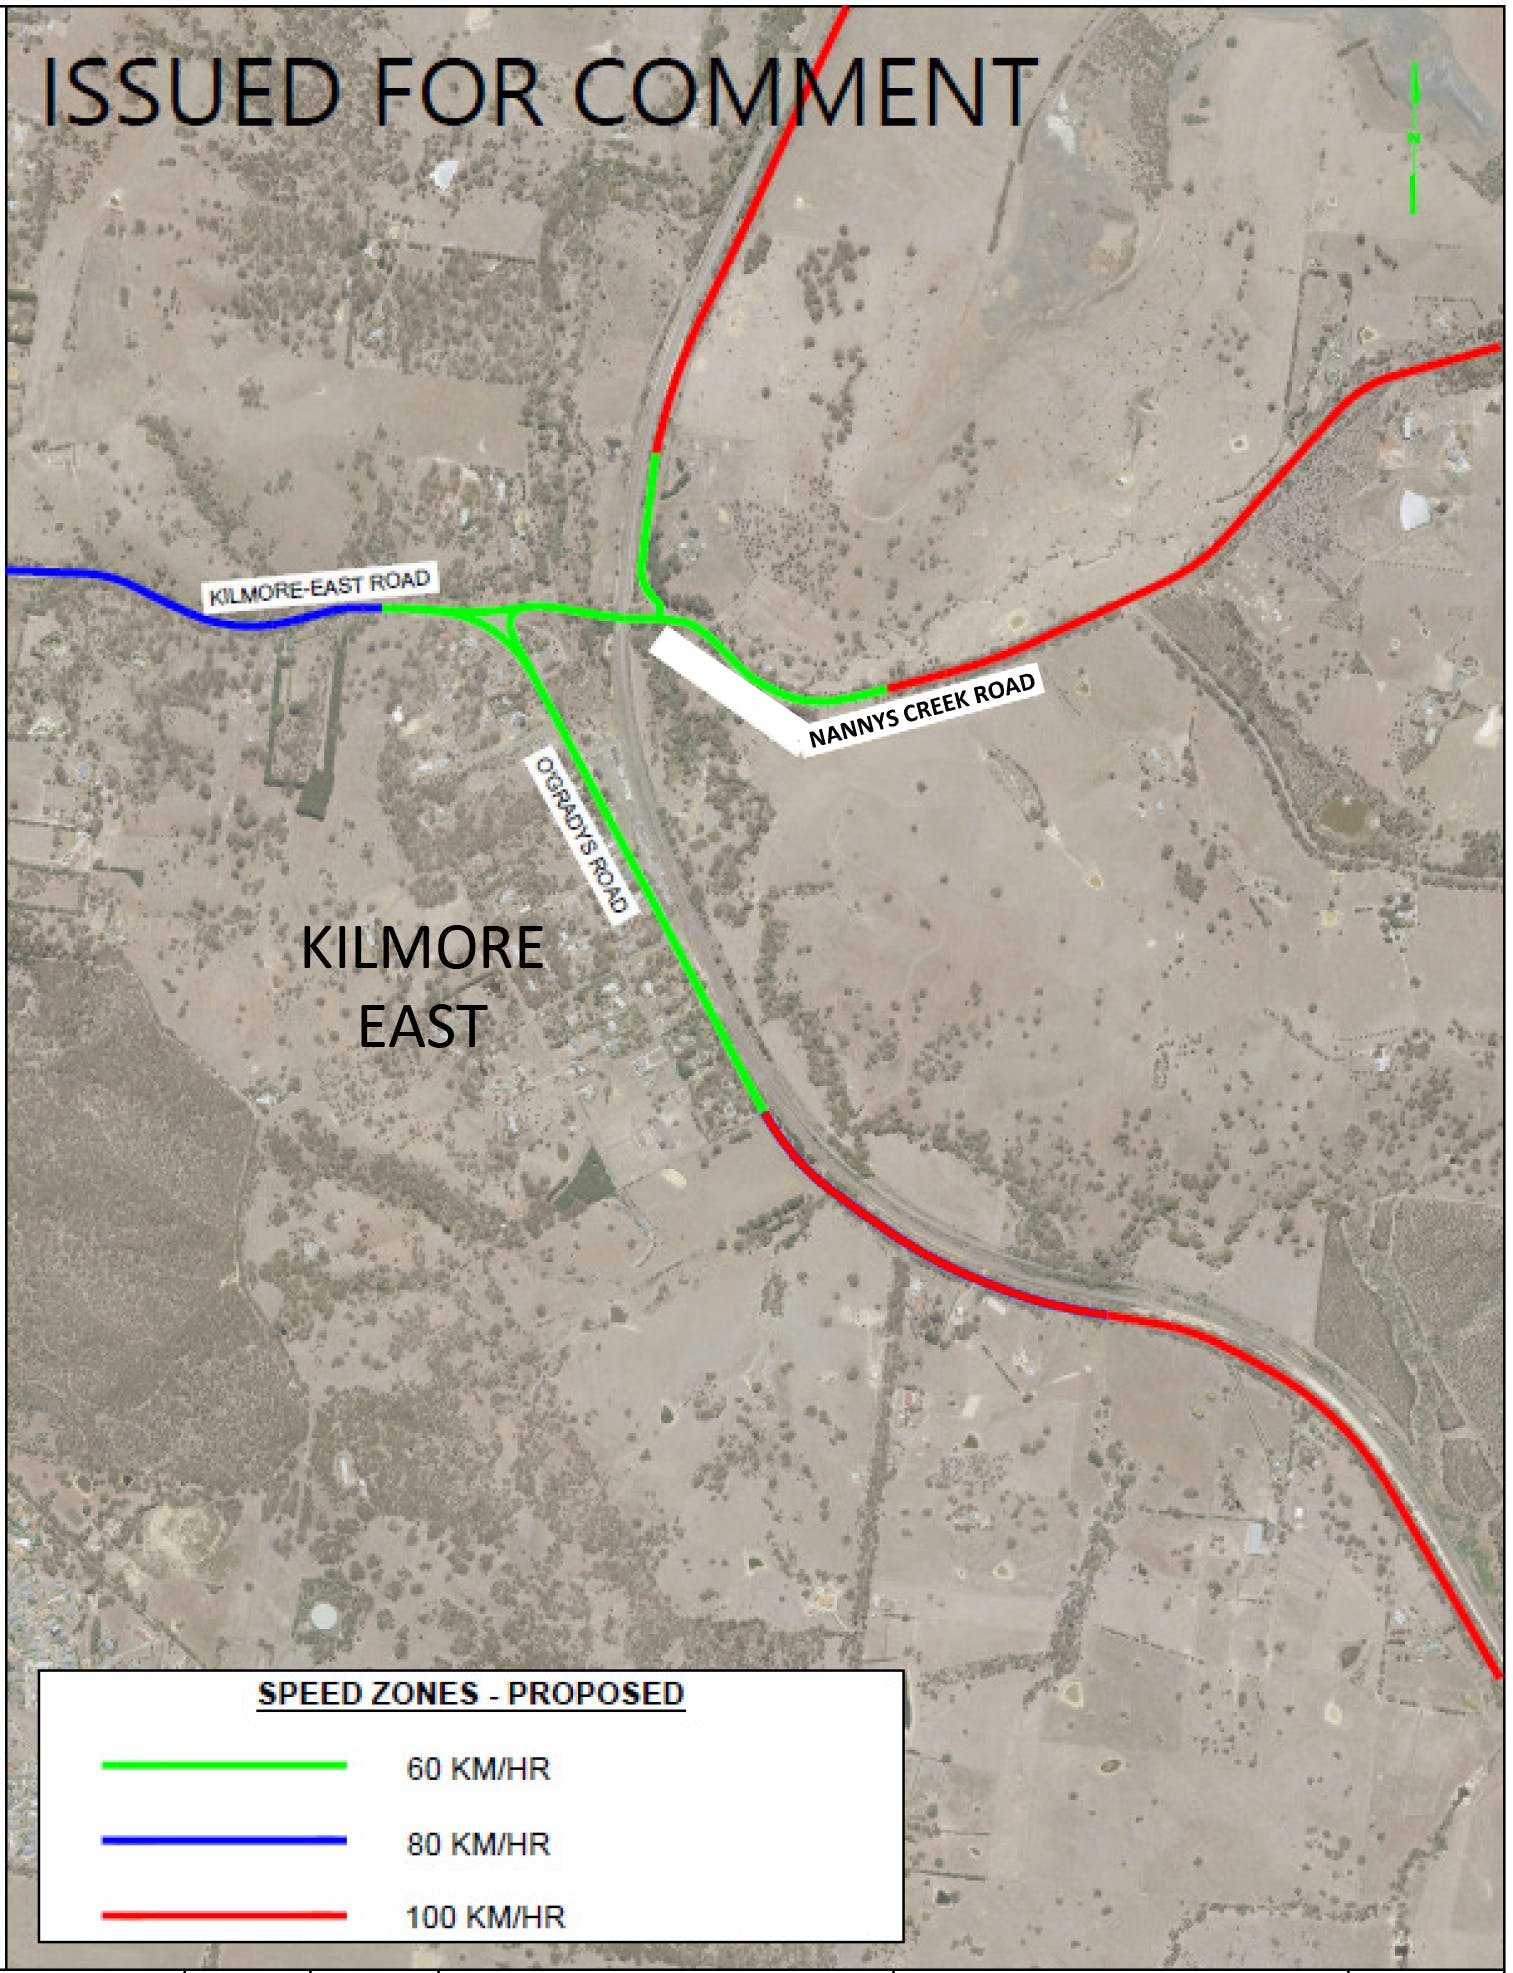 Kilmore East Speed Zone Map